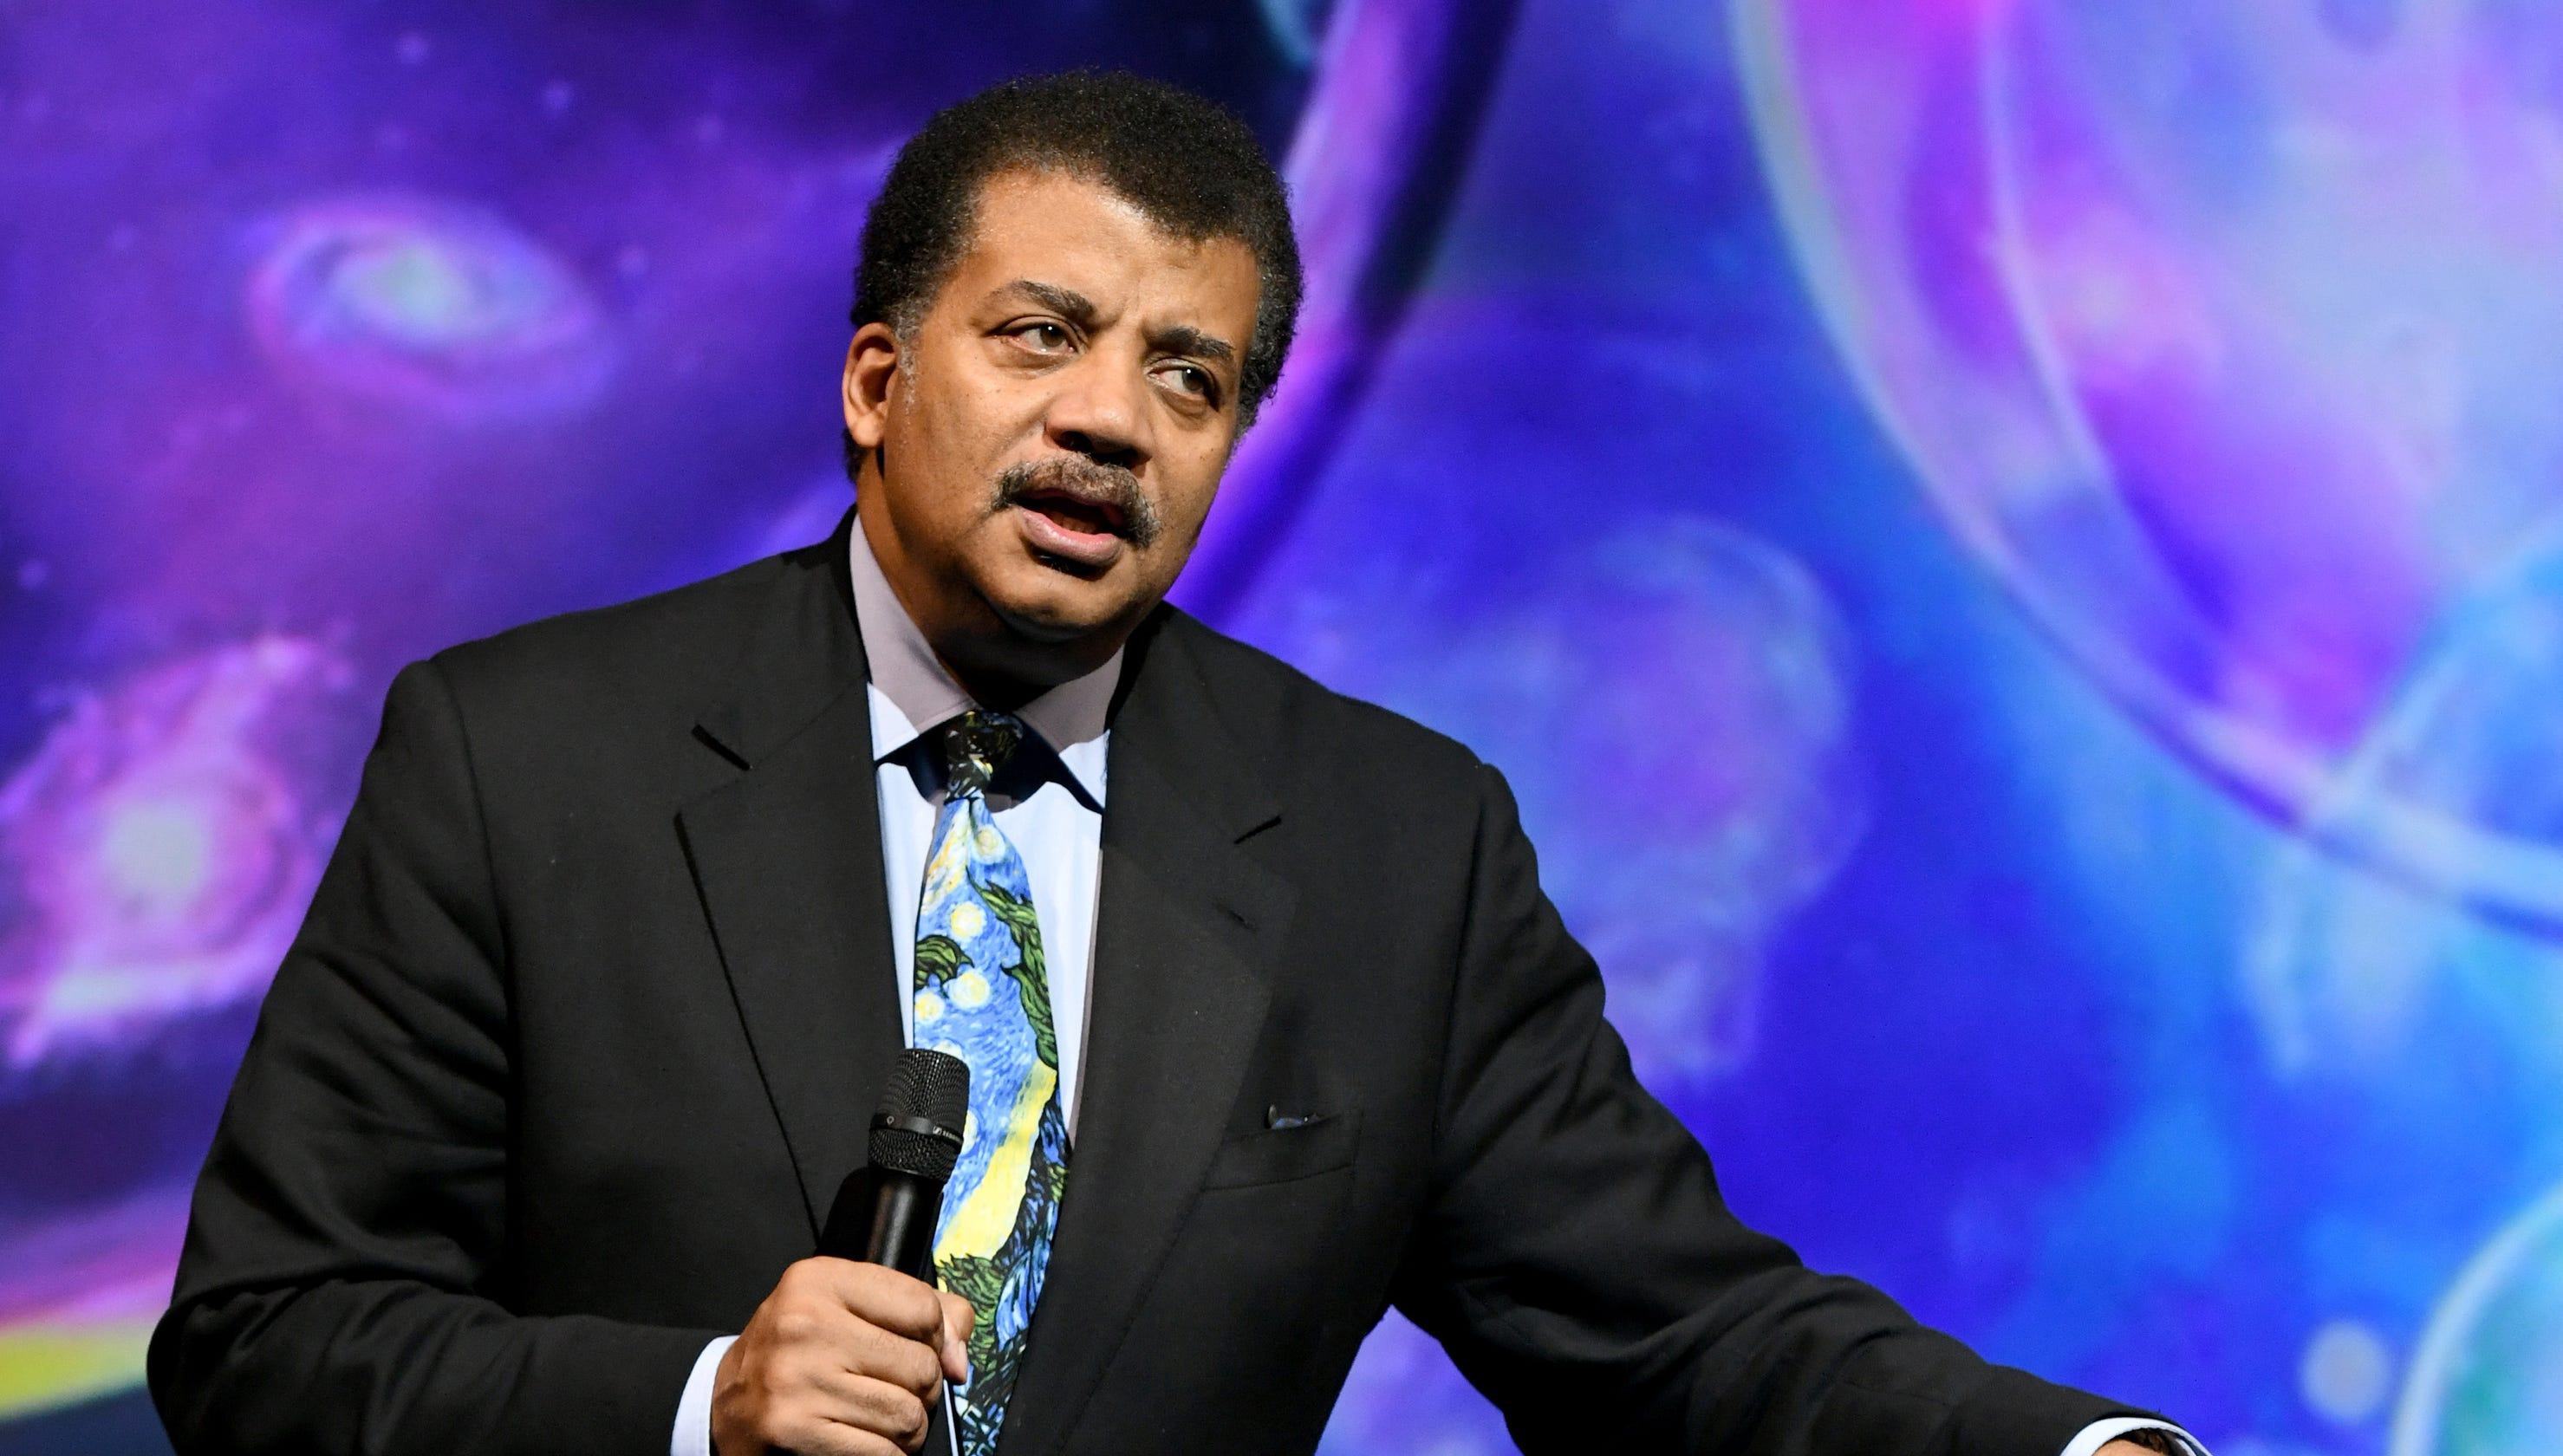 Neil deGrasse Tyson's StarTalk pulled amid investigation, report says